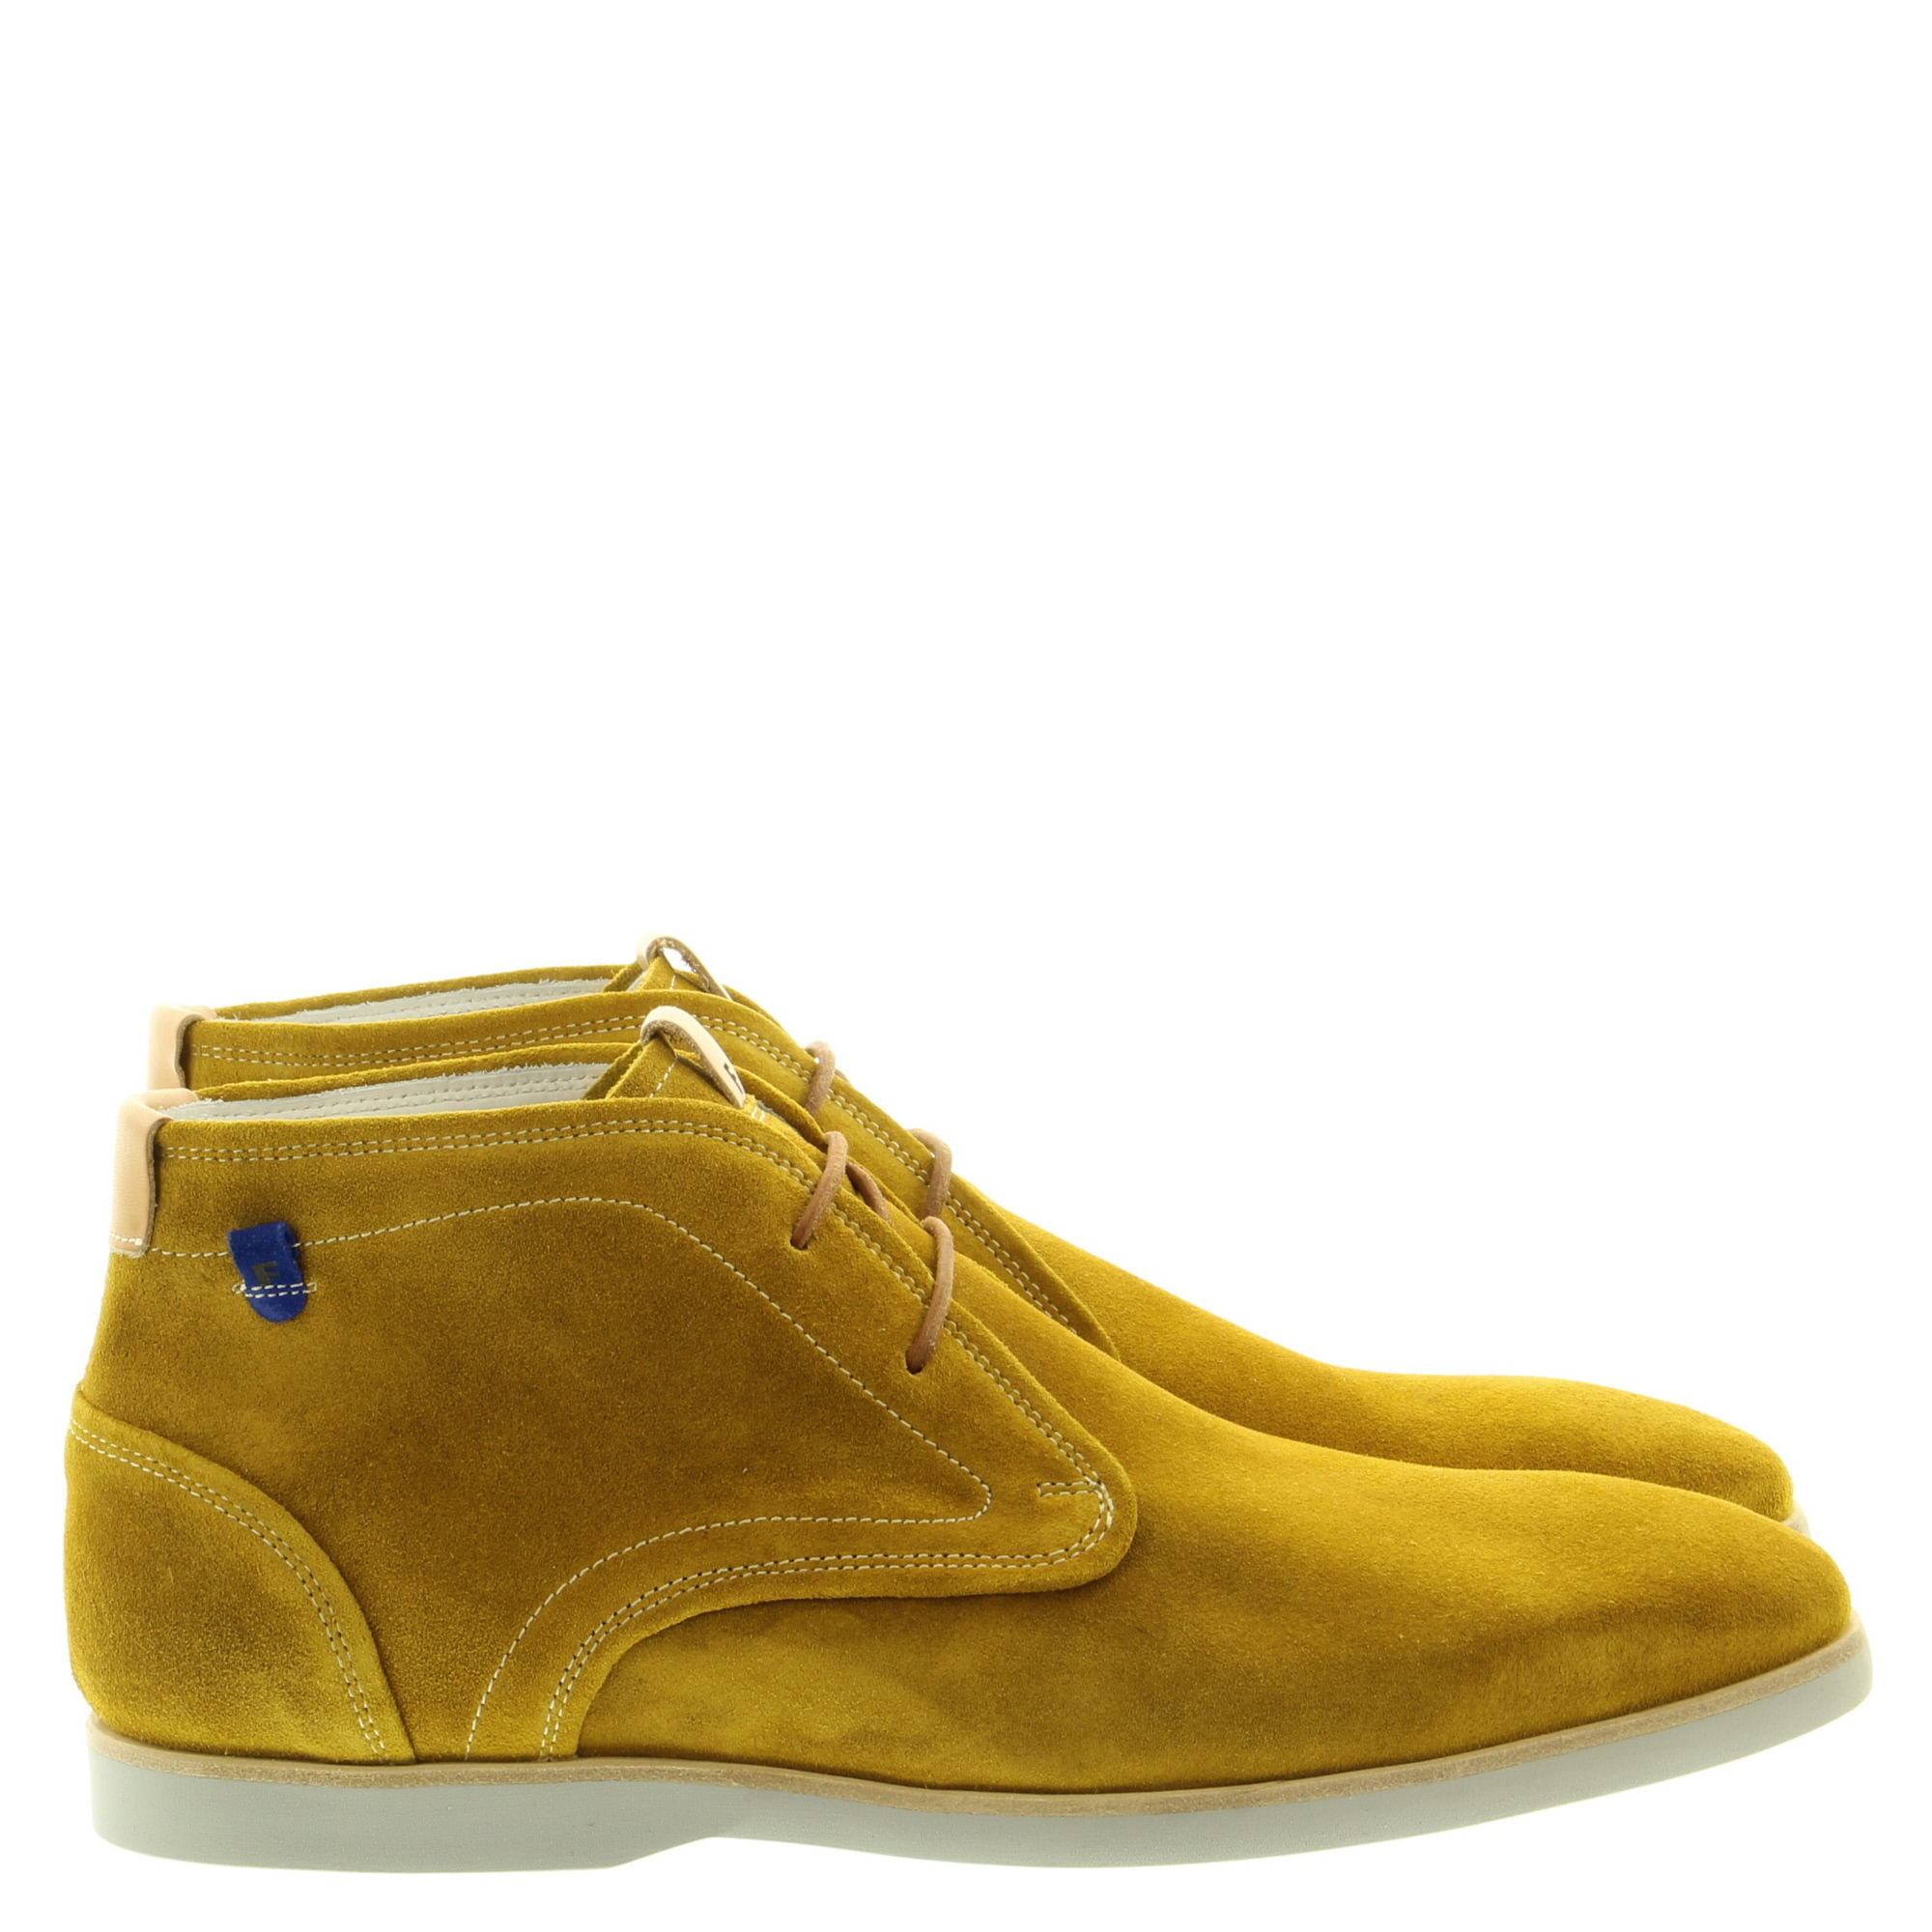 Floris van Bommel 20280 06 Yellow